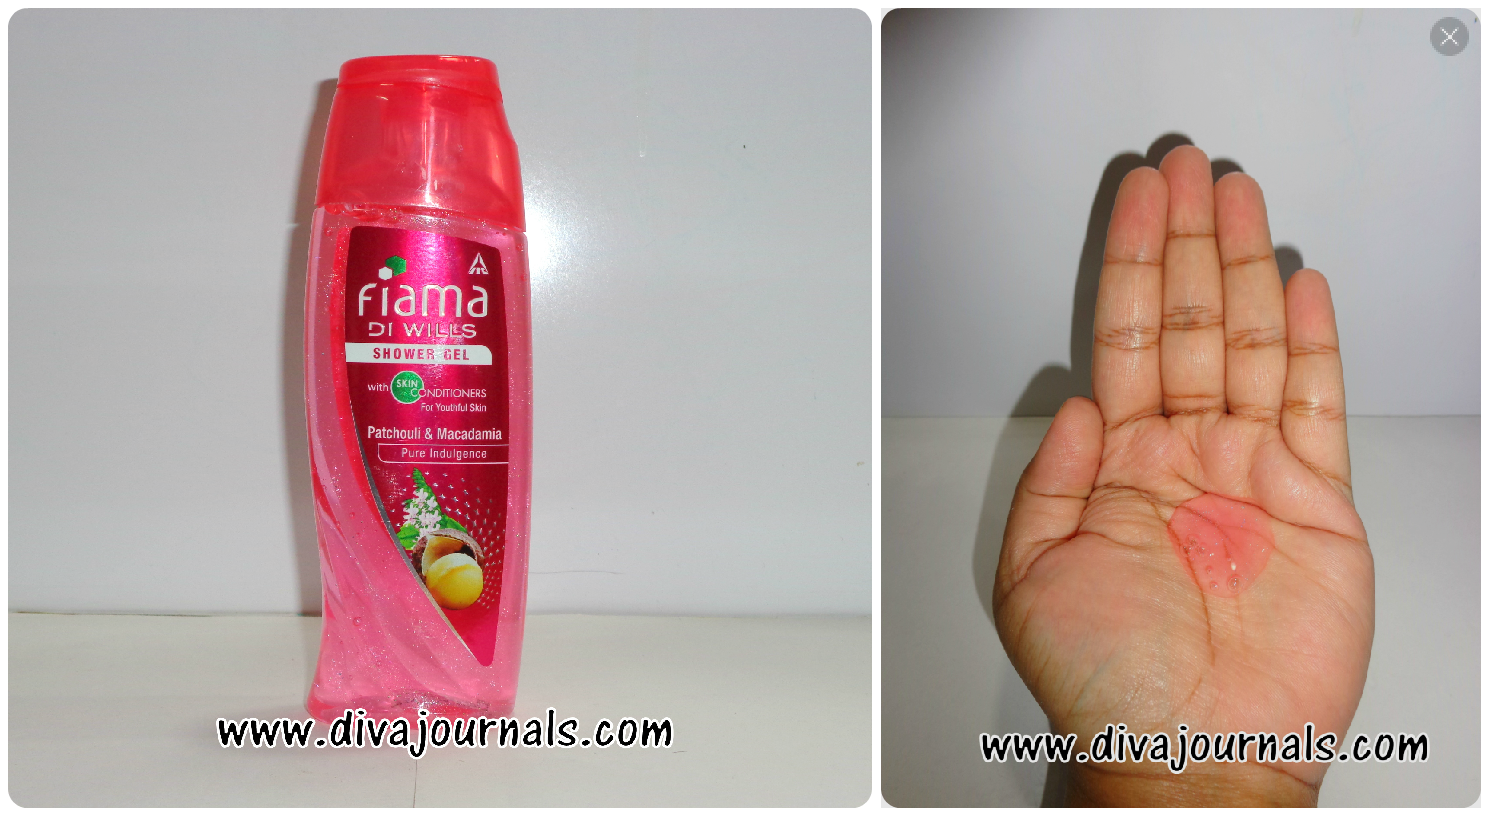 Fiama Di Wills Shower Gel - Couture Spa for Replenishing Care (Pink Bottle)